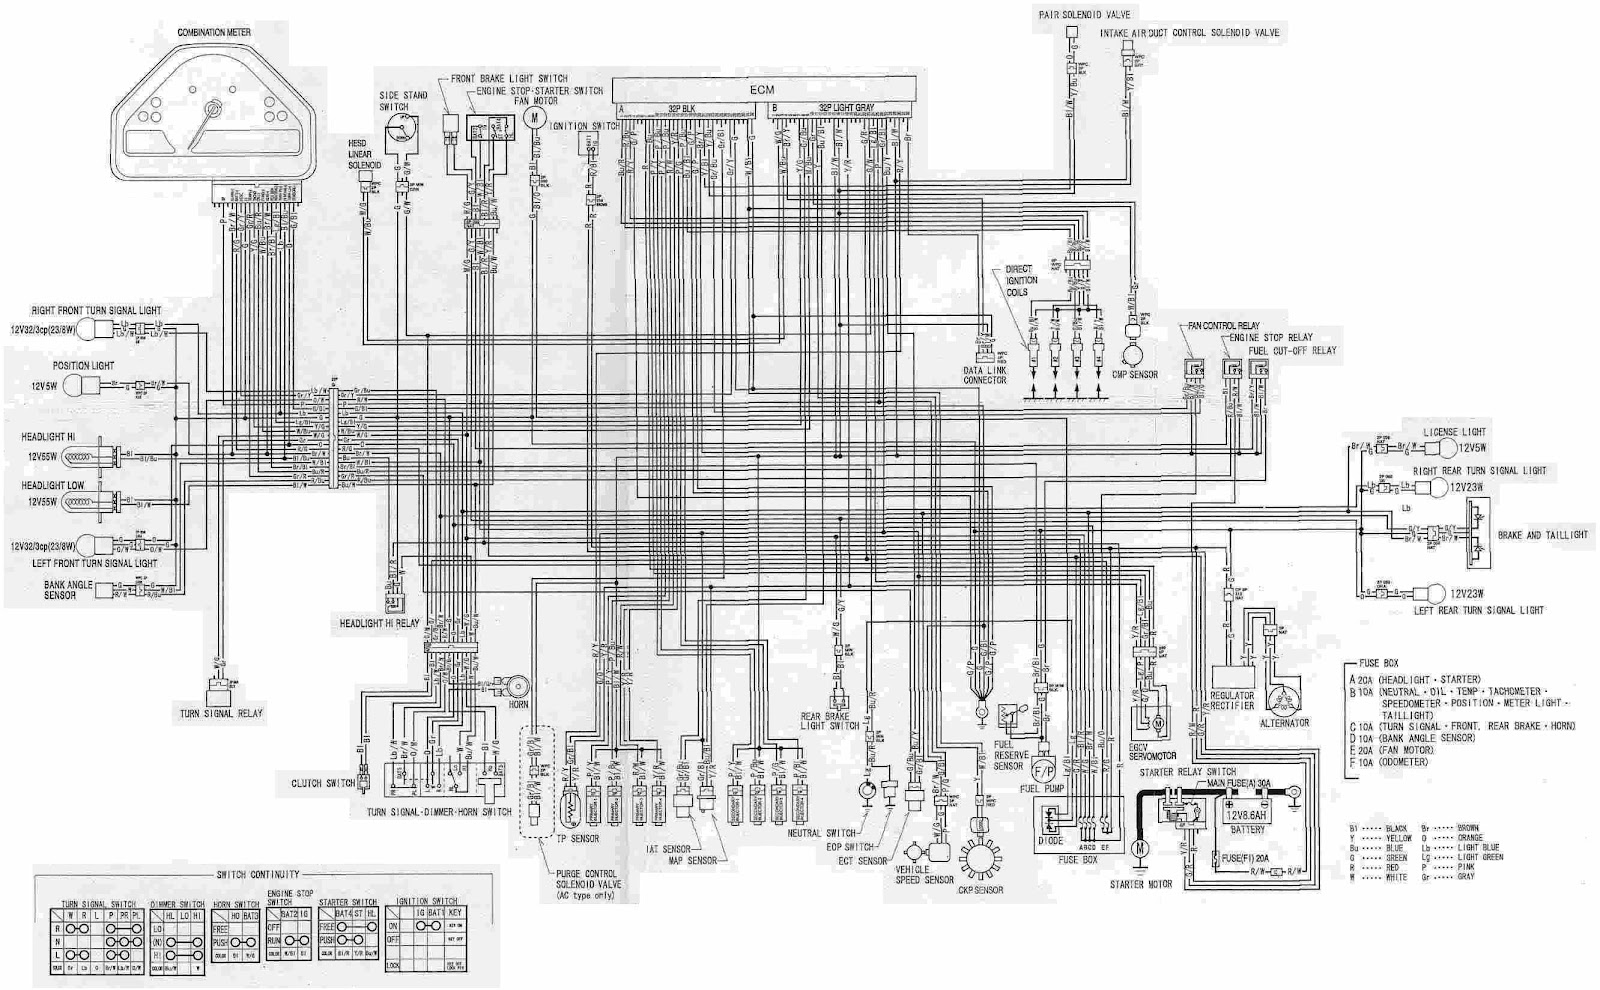 Diagram 1988 Honda Cbr Wiring Diagram 19 Mb New Update December 17 2020 Full Version Hd Quality Wiring Diagram Brazoswiringsolutions Venditabirraartigianale It